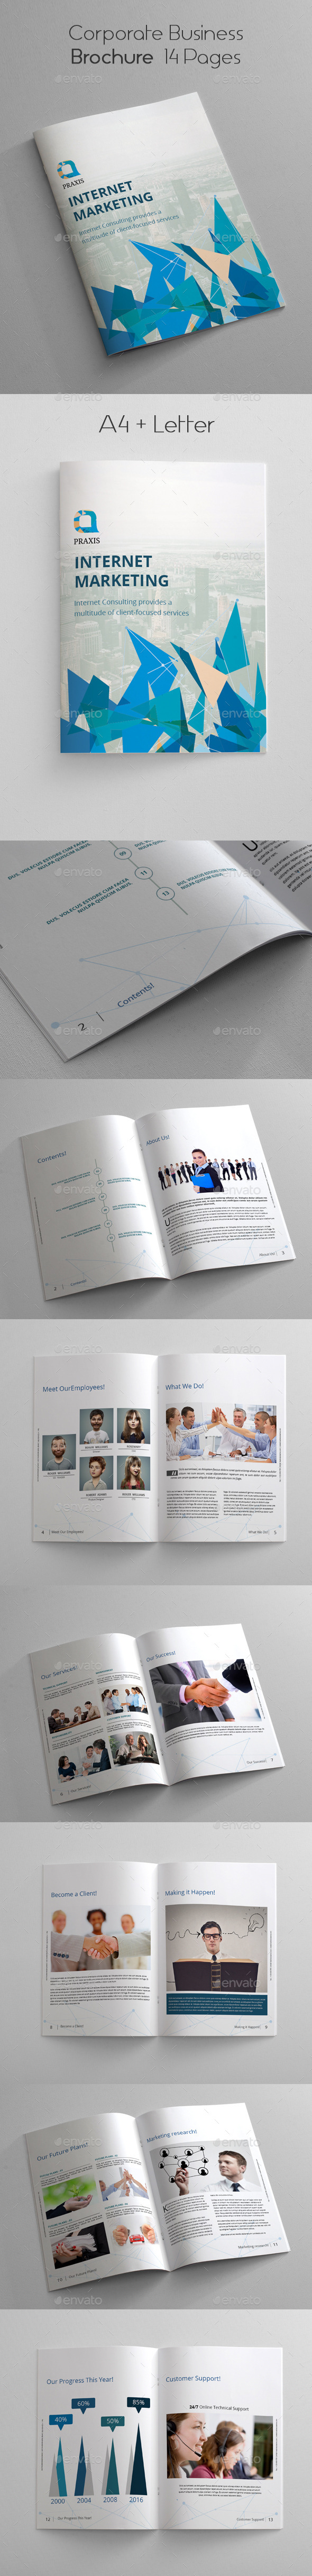 GraphicRiver Corporate Business Brochure 14 Pages 10636870